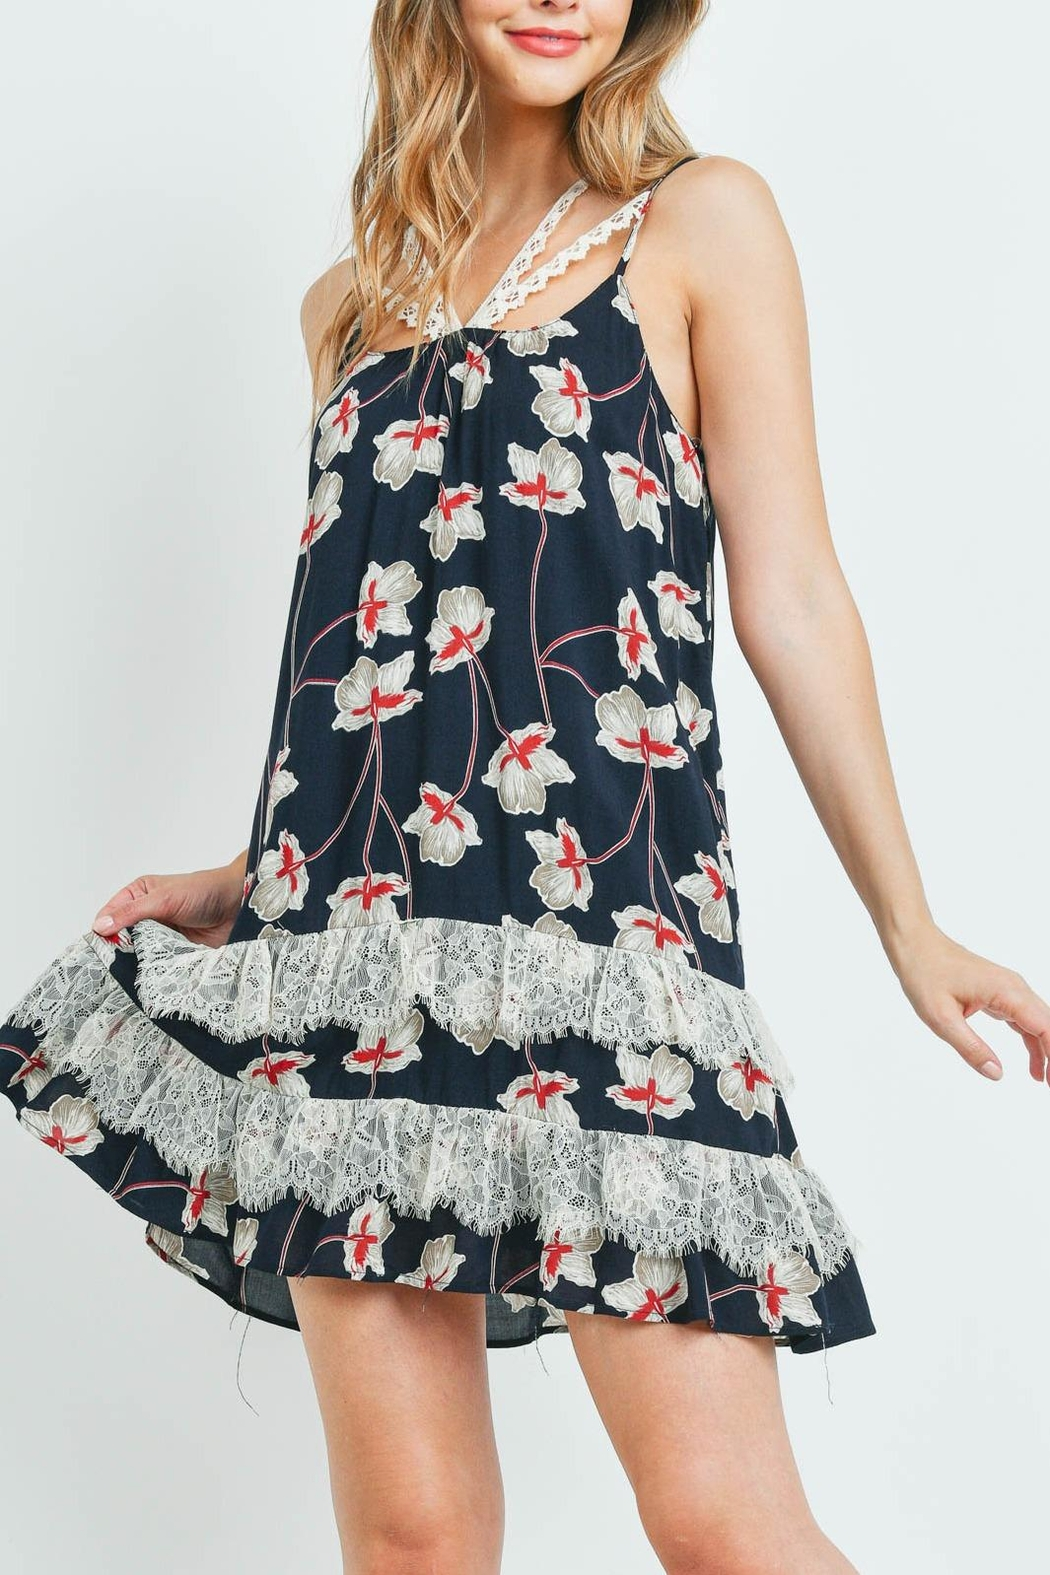 Riah Fashion Navy-With-Flower-Print-Dress - Side Cropped Image